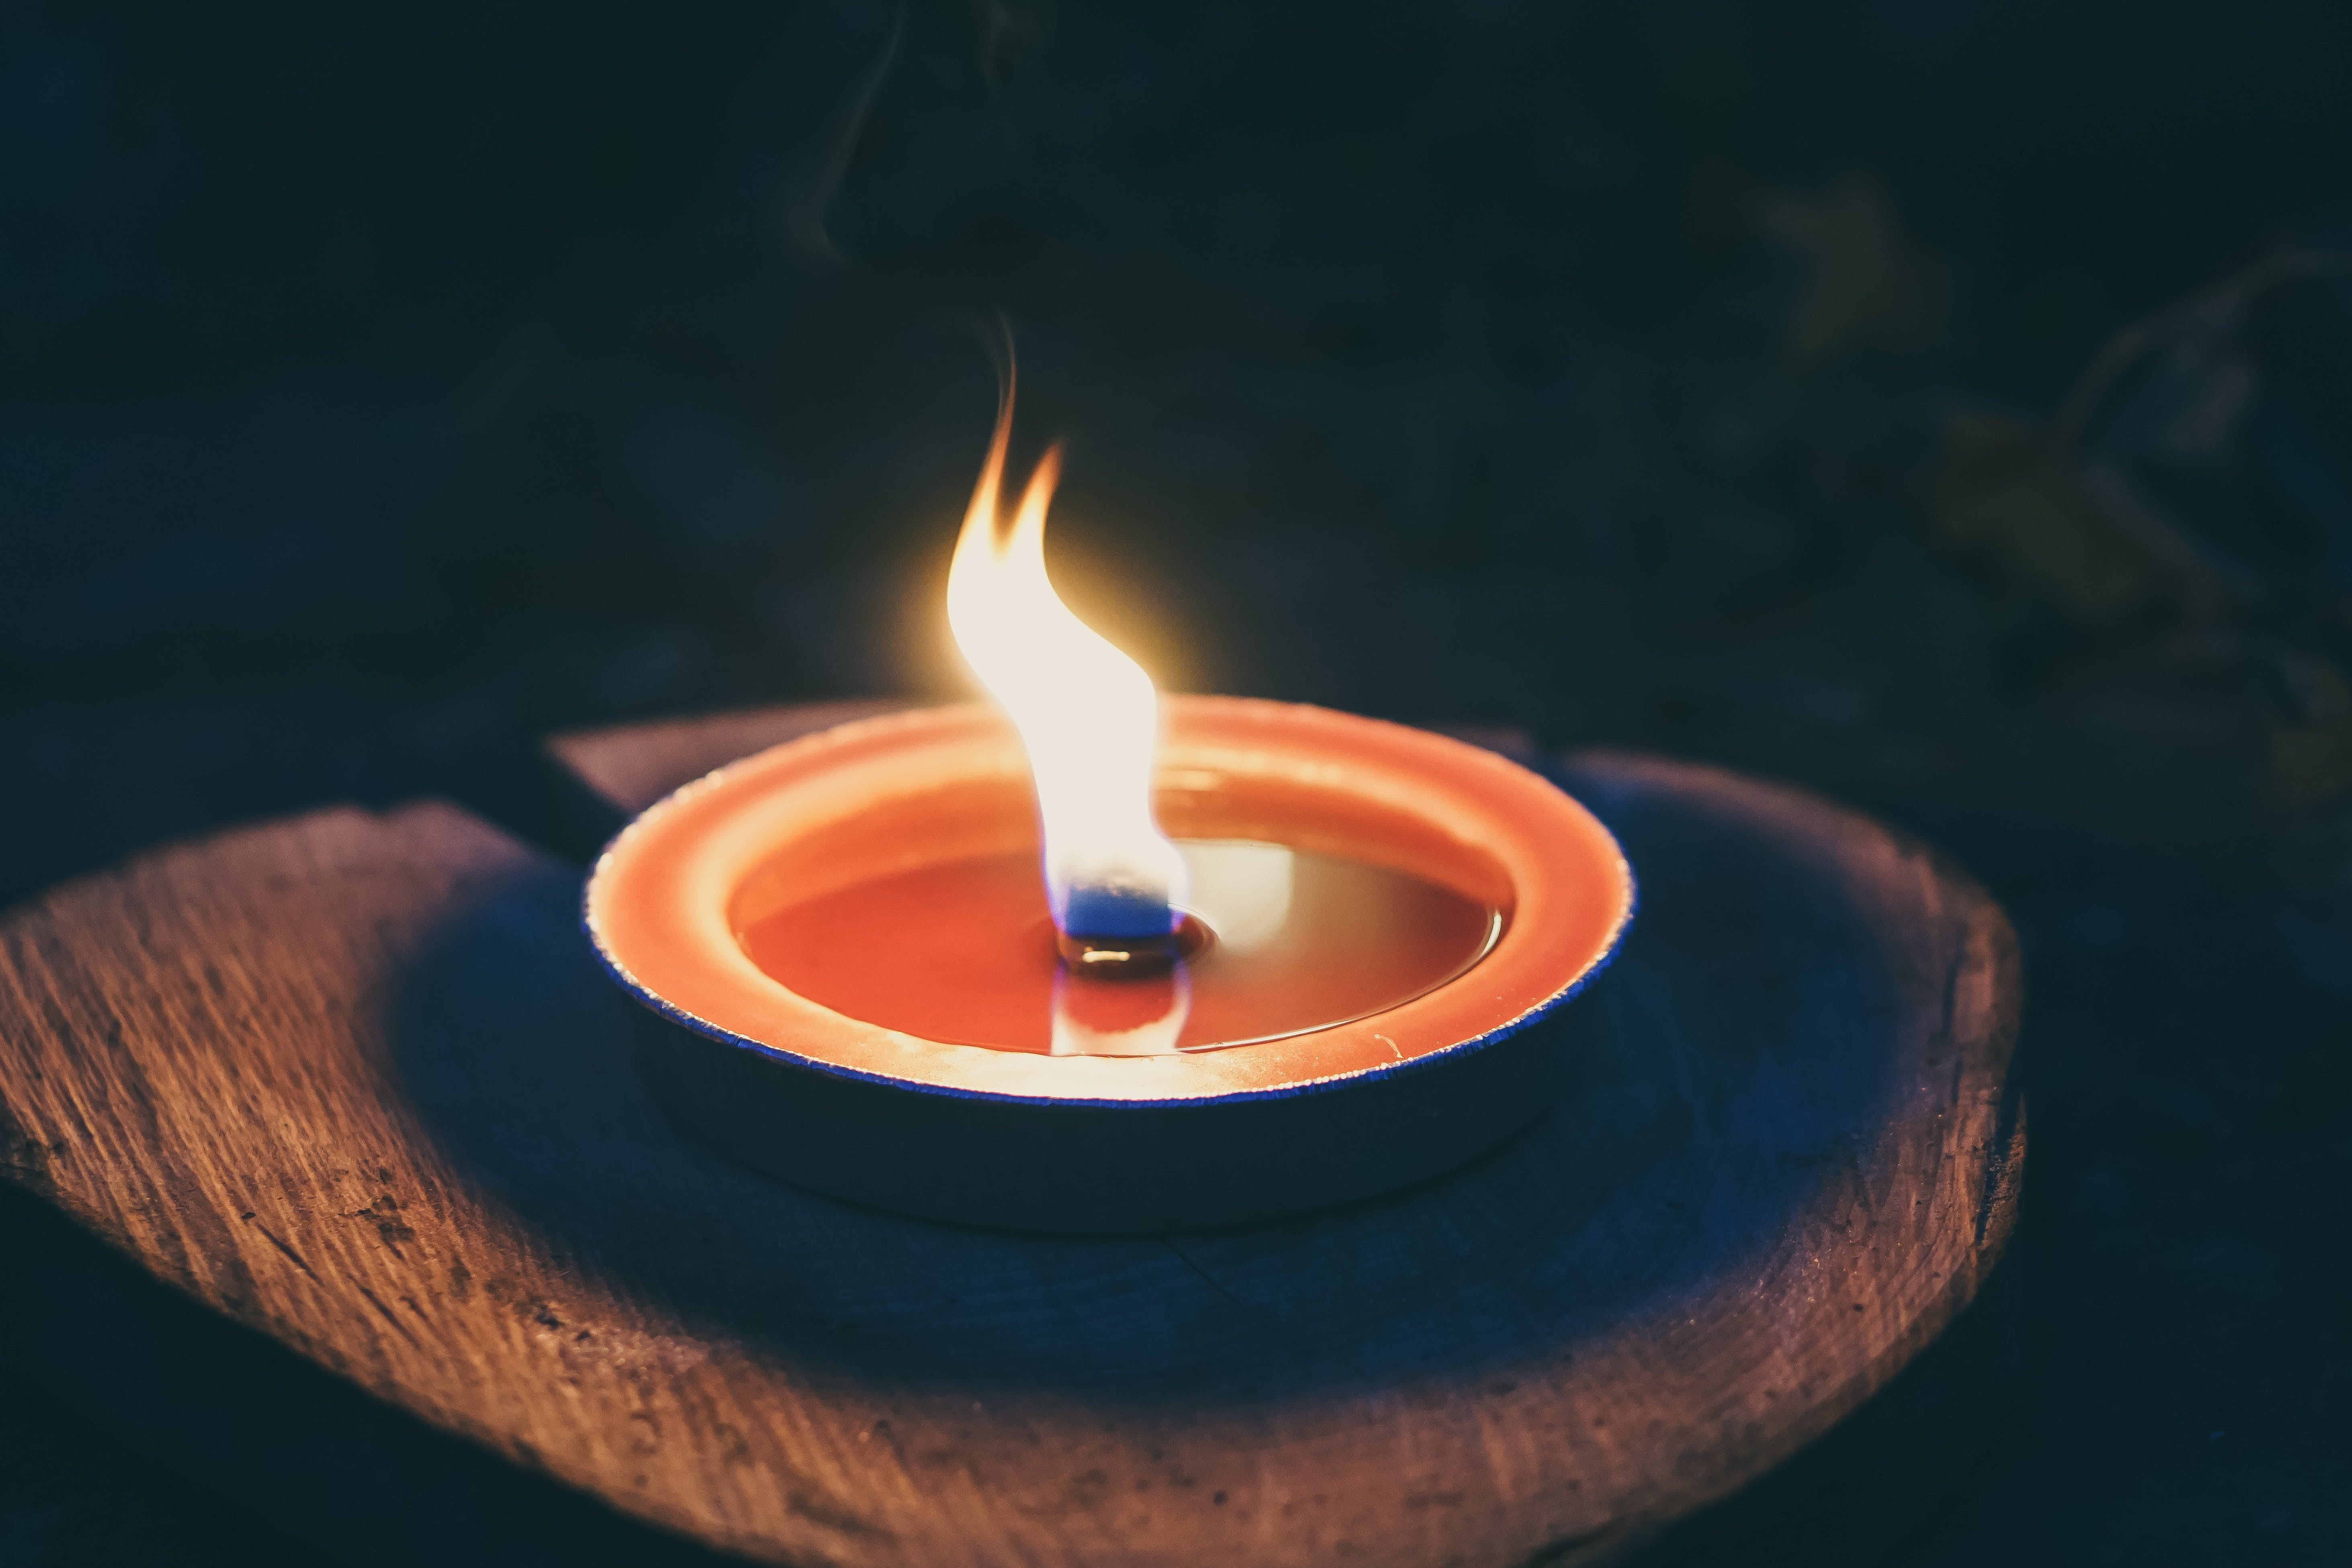 Candle on Wooden Platform